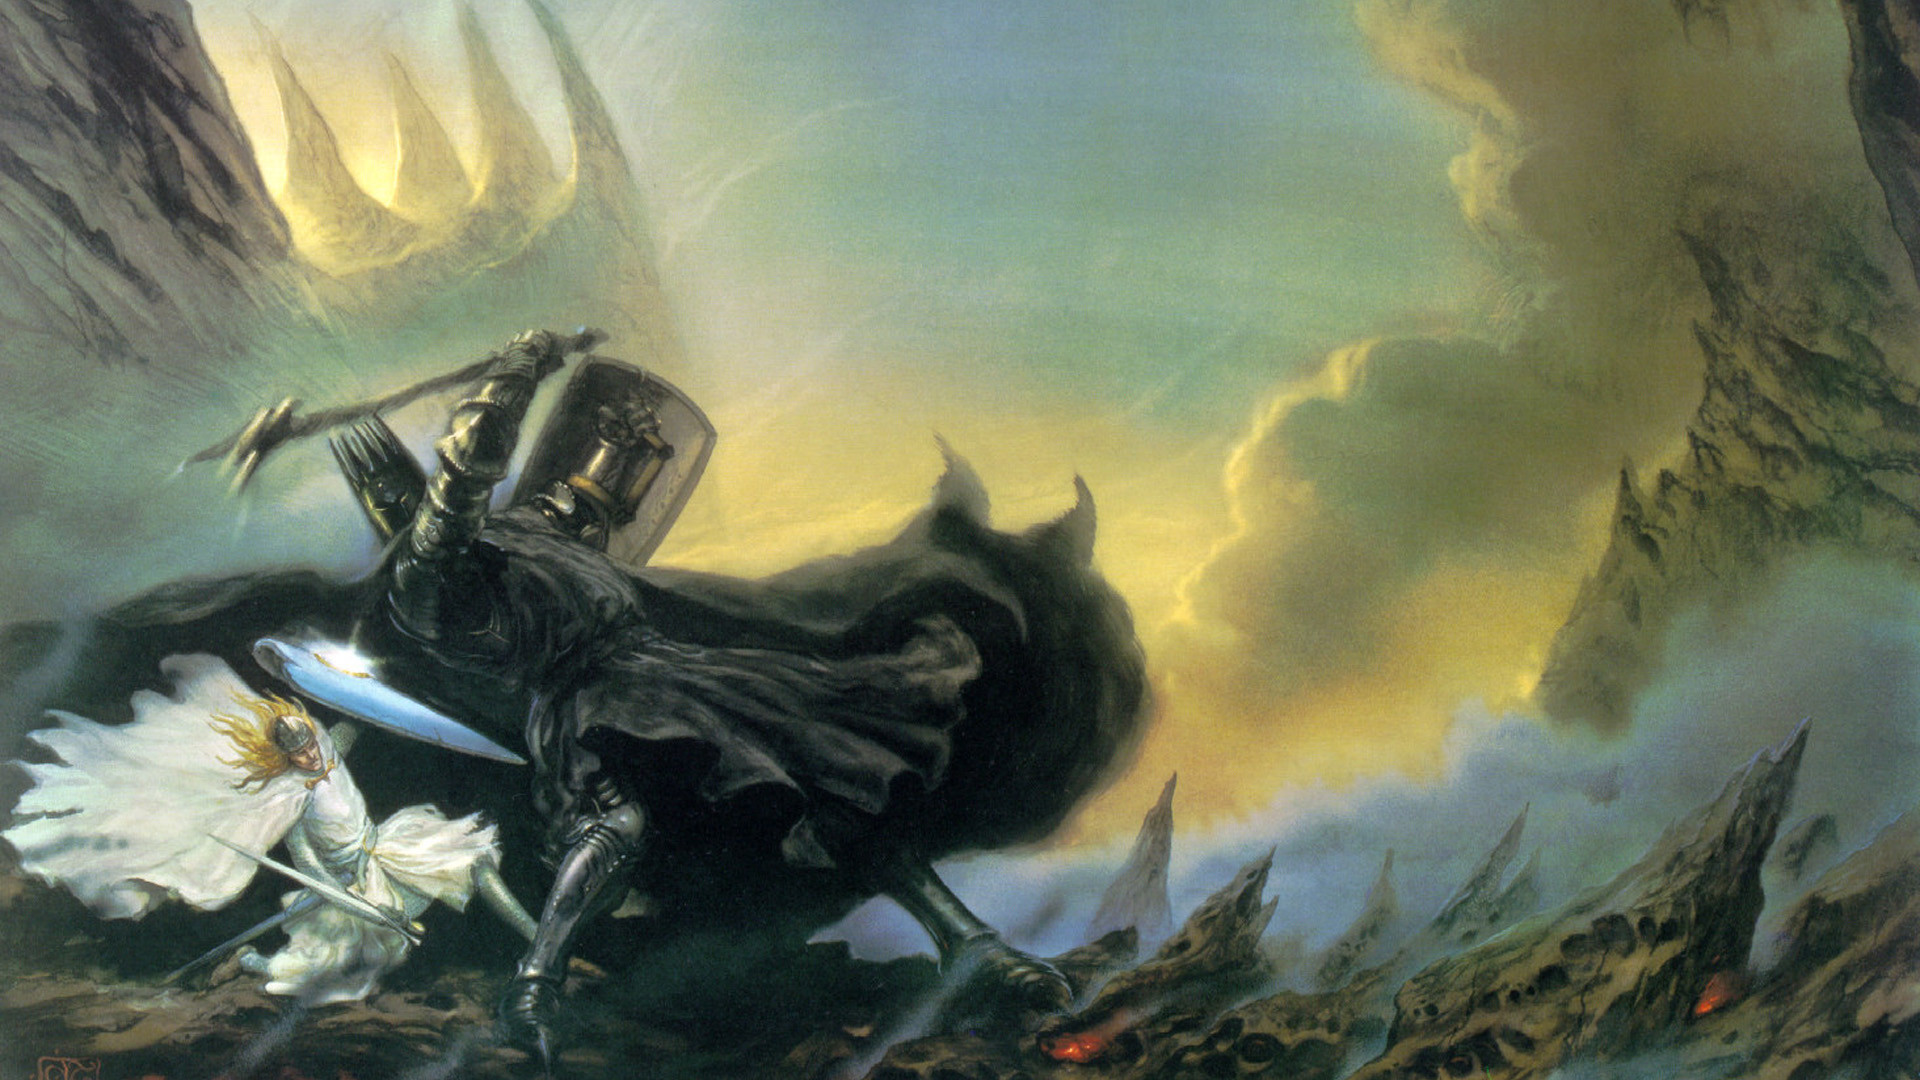 Res: 1920x1080, J. R. R. Tolkien, The Silmarillion, Morgoth, Fantasy Art, John Howe